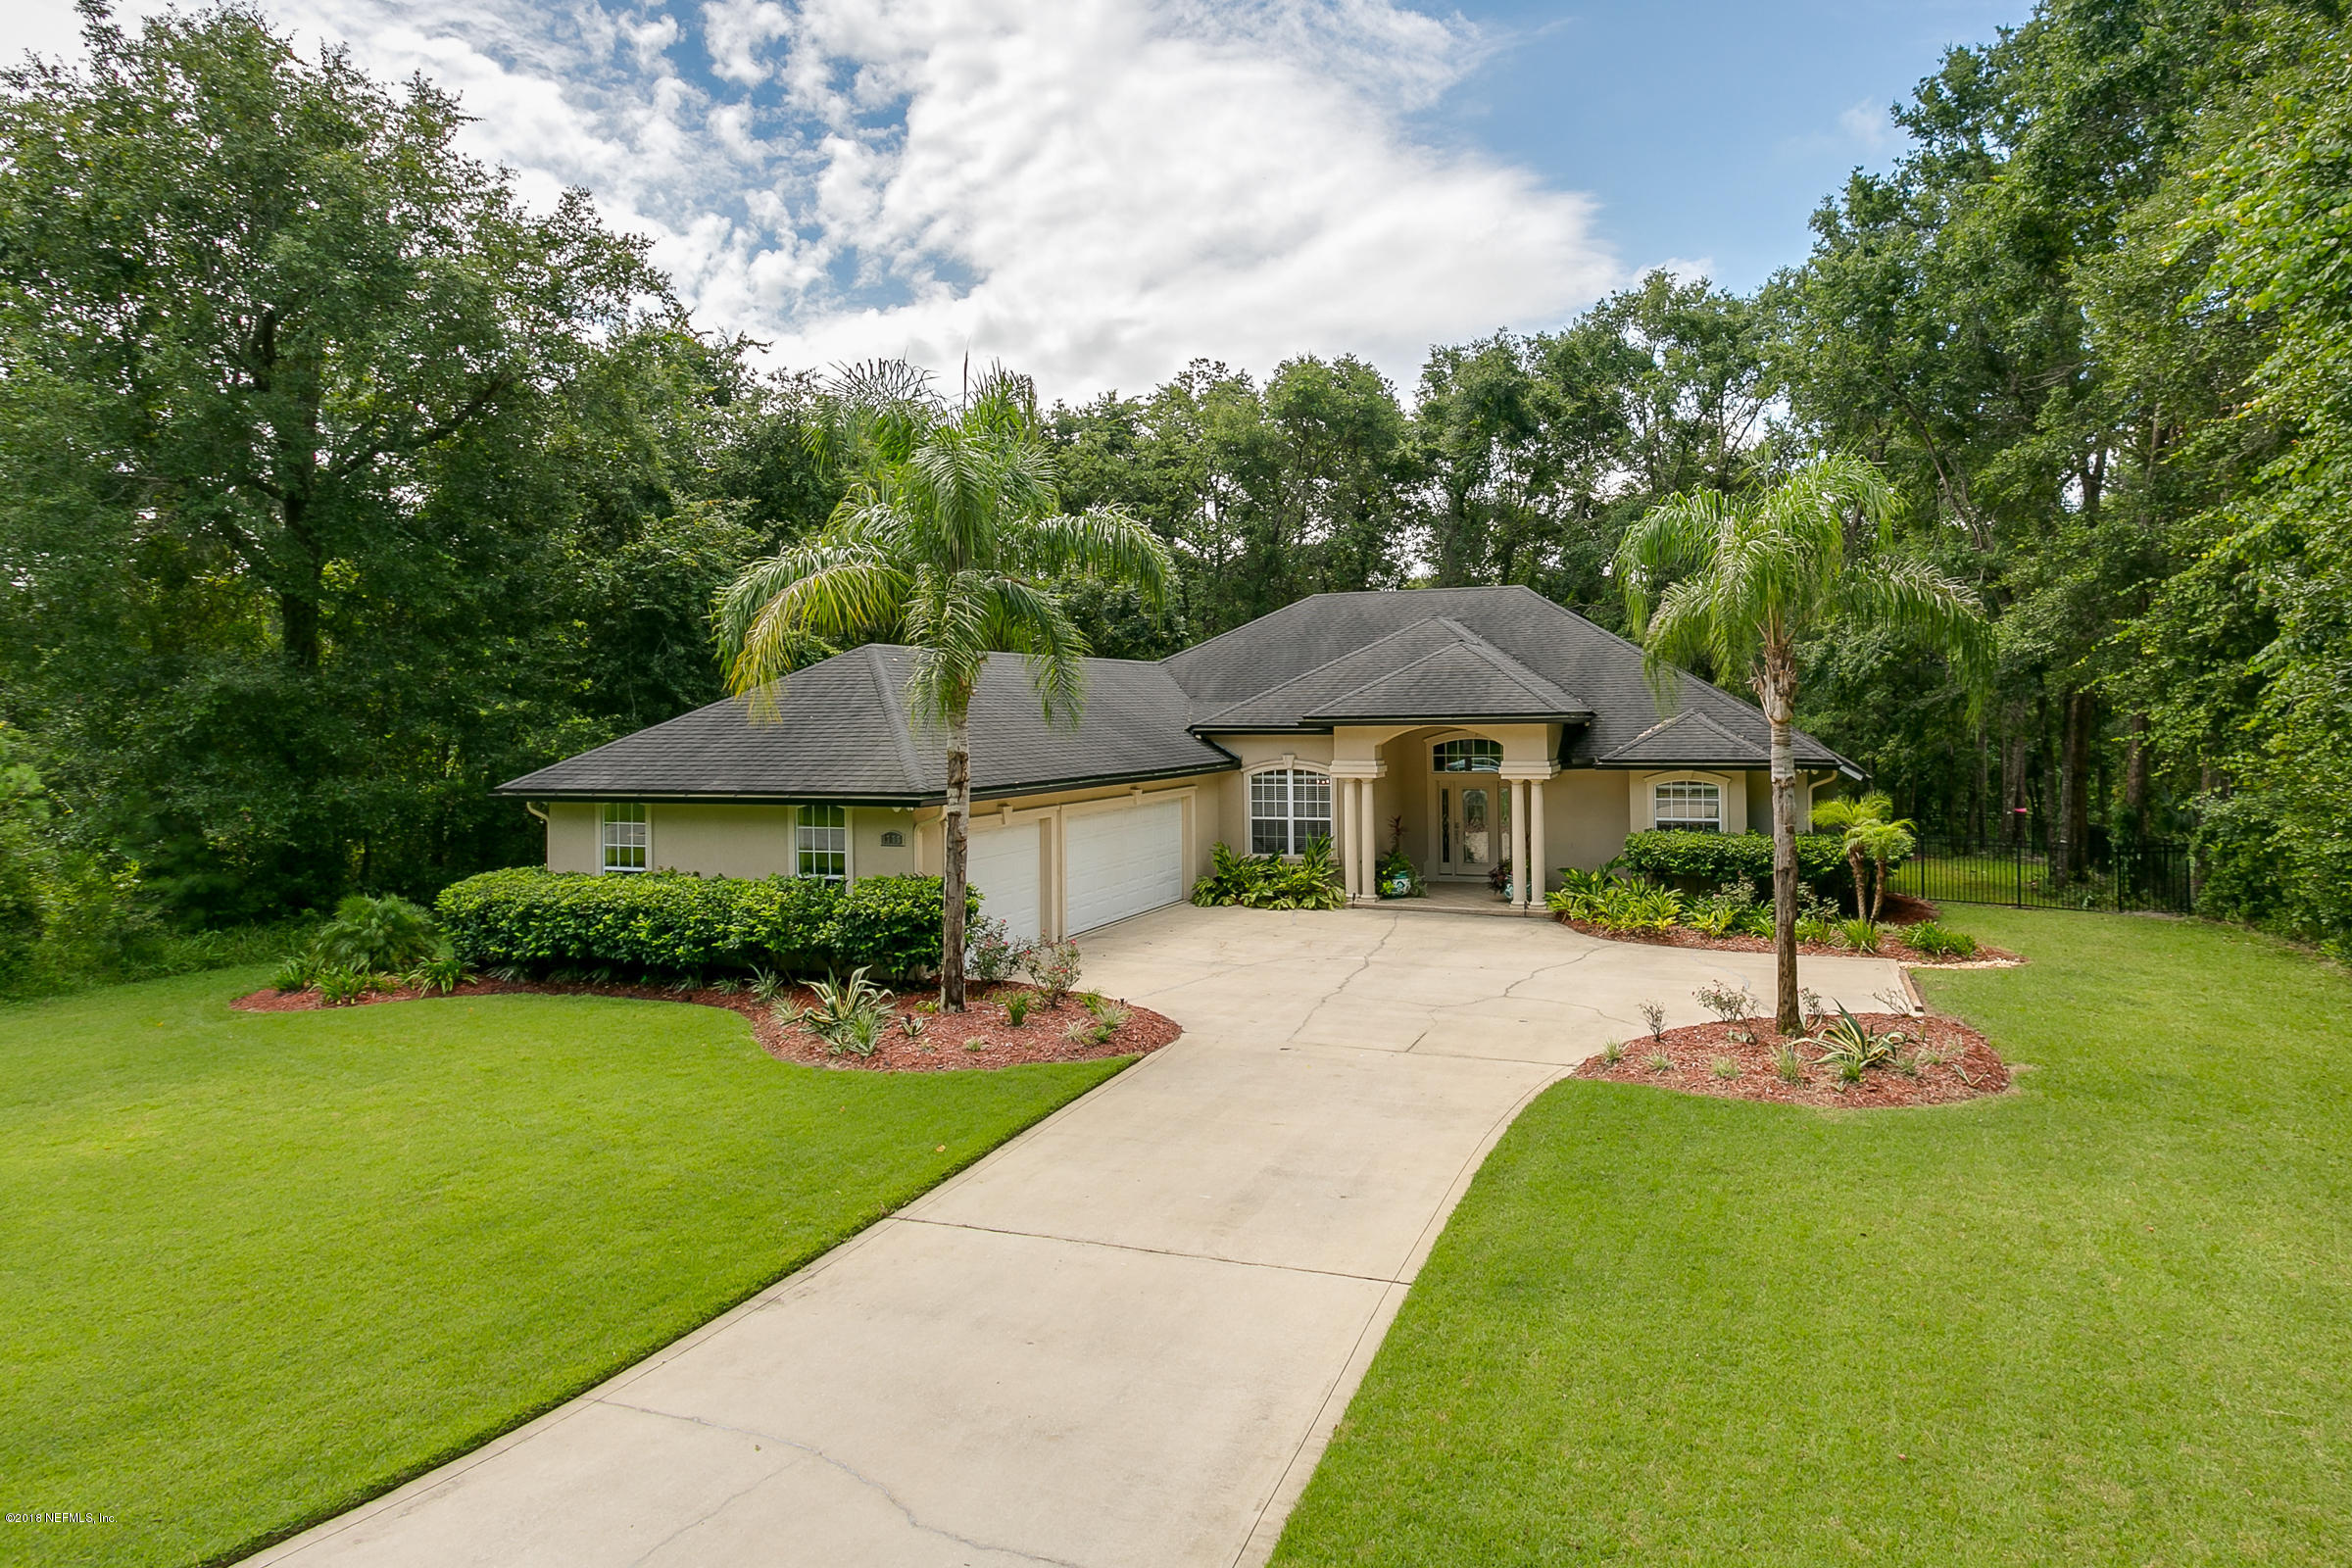 1775 COLONIAL, GREEN COVE SPRINGS, FLORIDA 32043, 4 Bedrooms Bedrooms, ,3 BathroomsBathrooms,Residential - single family,For sale,COLONIAL,946220